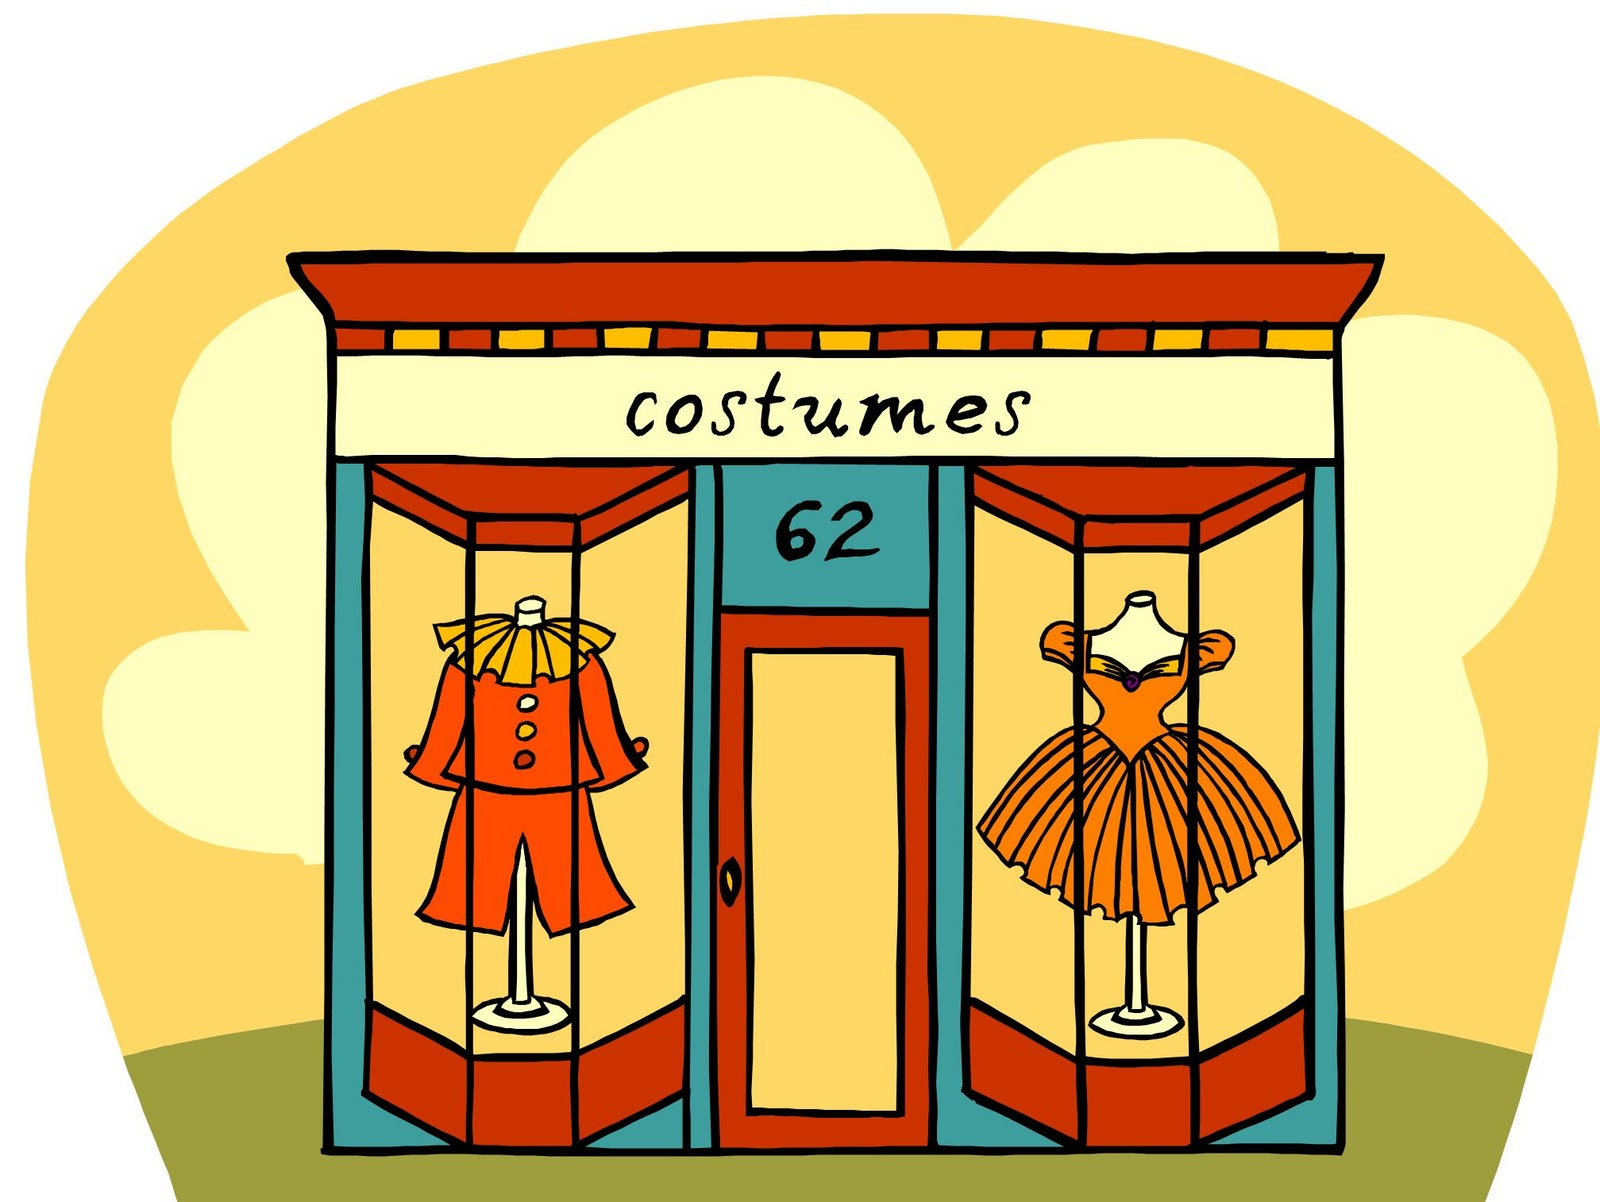 Clothing store clipart free image.